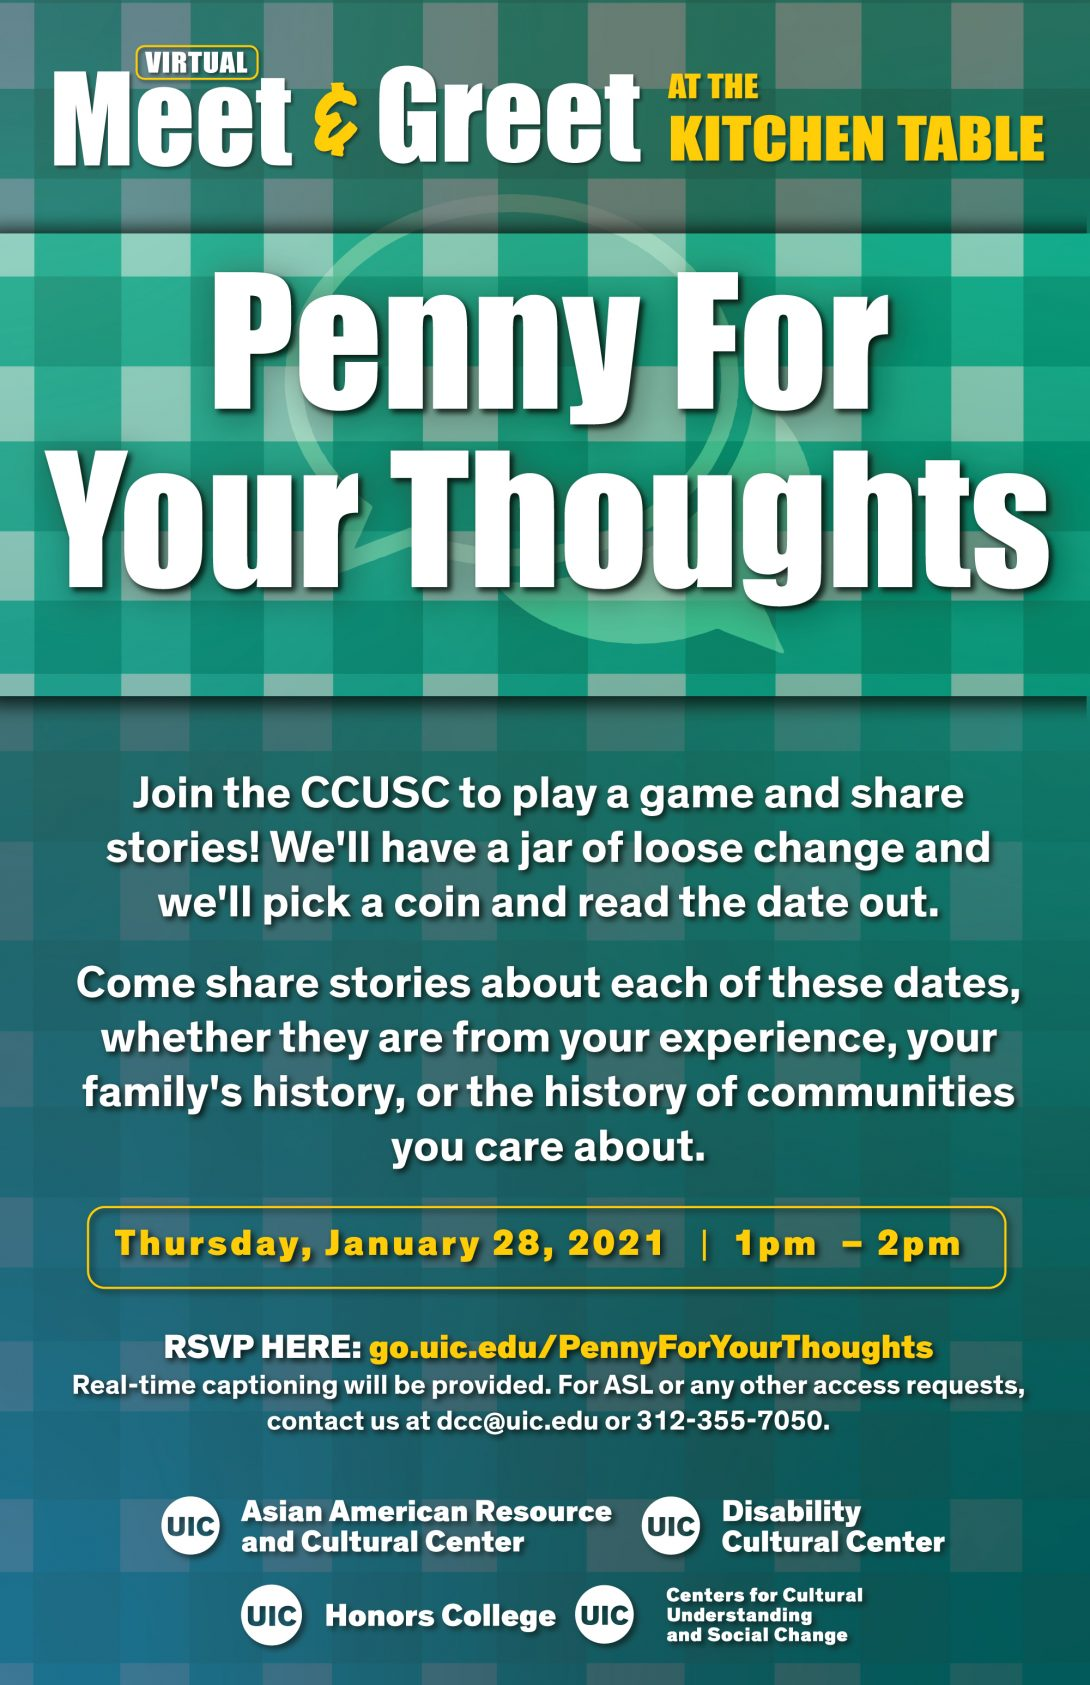 Uic Academic Calendar 2021 Virtual Meet & Greet at the Kitchen Table: Penny For Your Thoughts